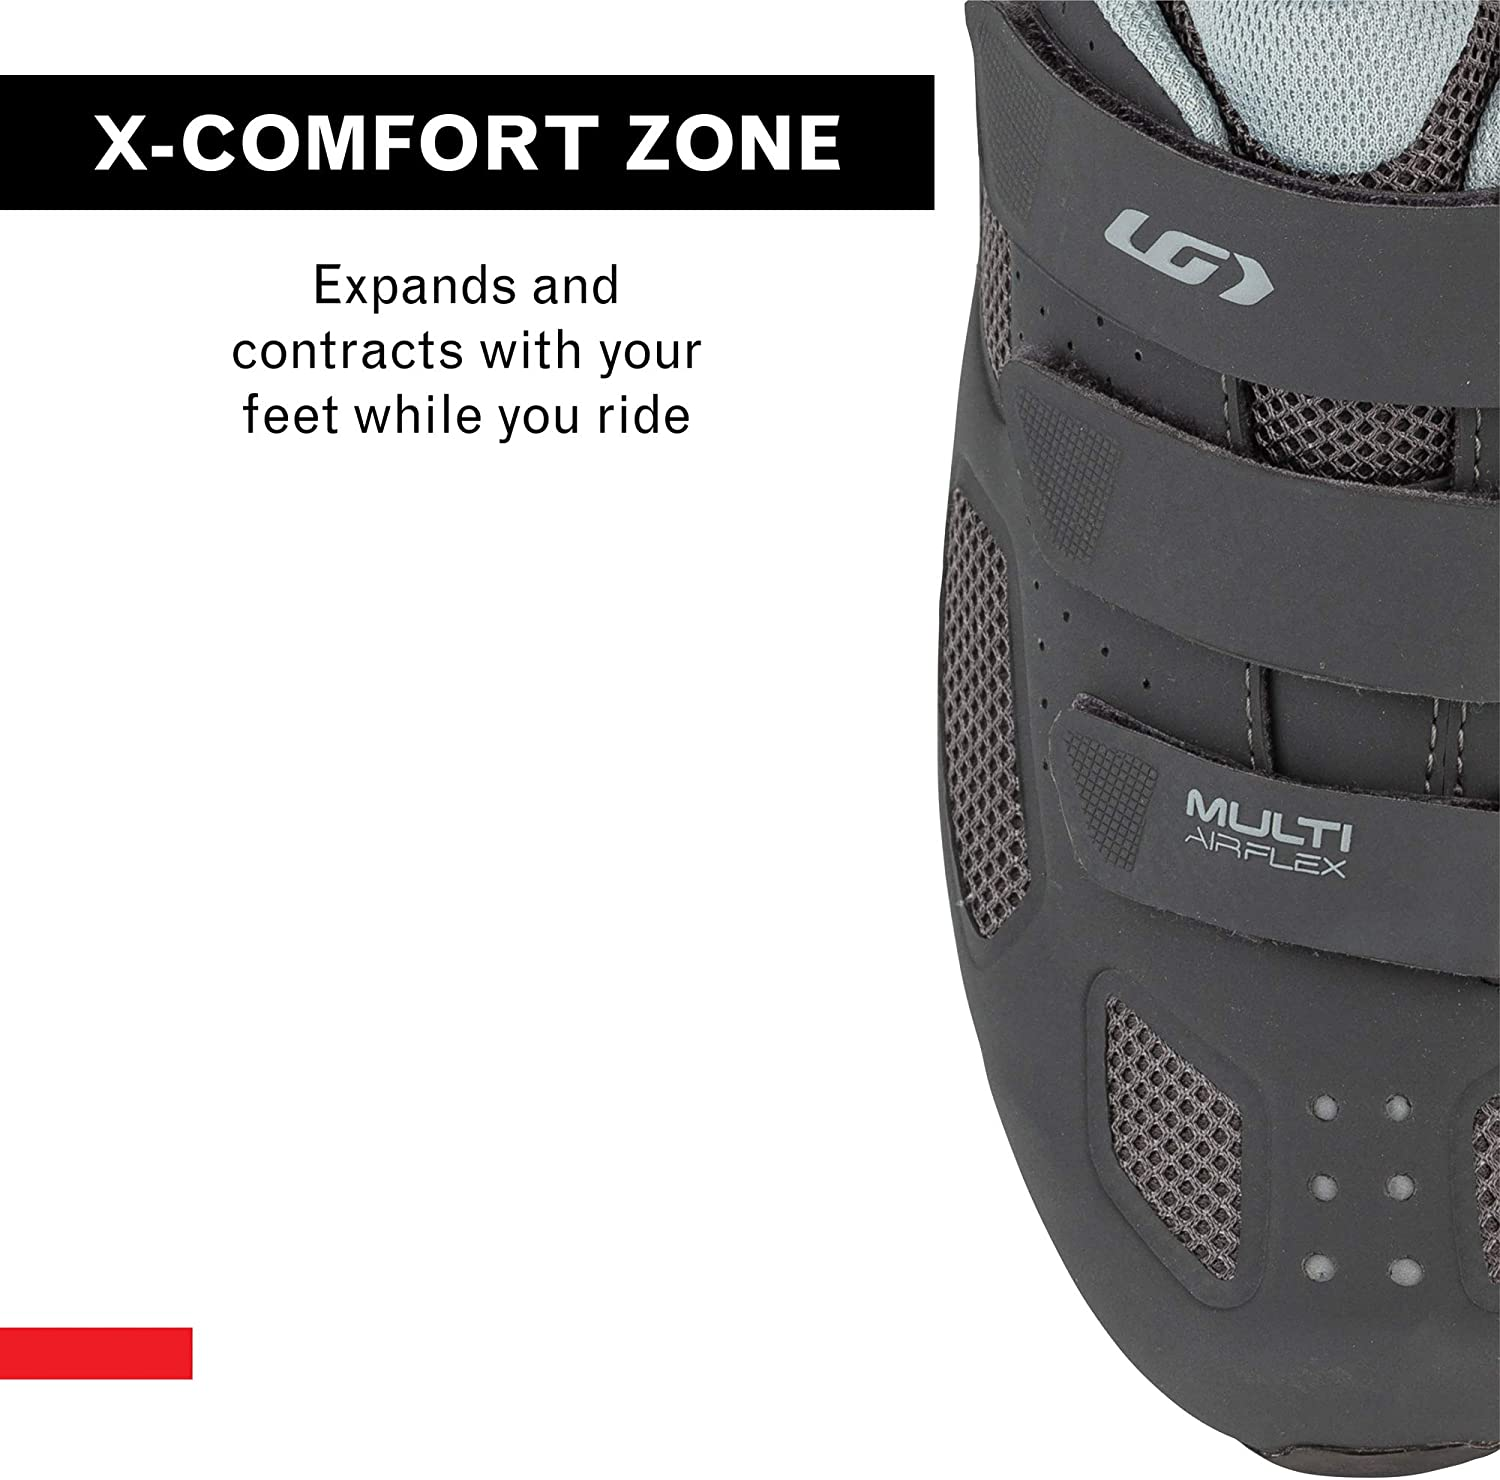 Womens Multi Air Flex Bike Shoes for Indoor Cycling SPD Cleats Compatible with MTB Pedals Commuting and MTB Louis Garneau